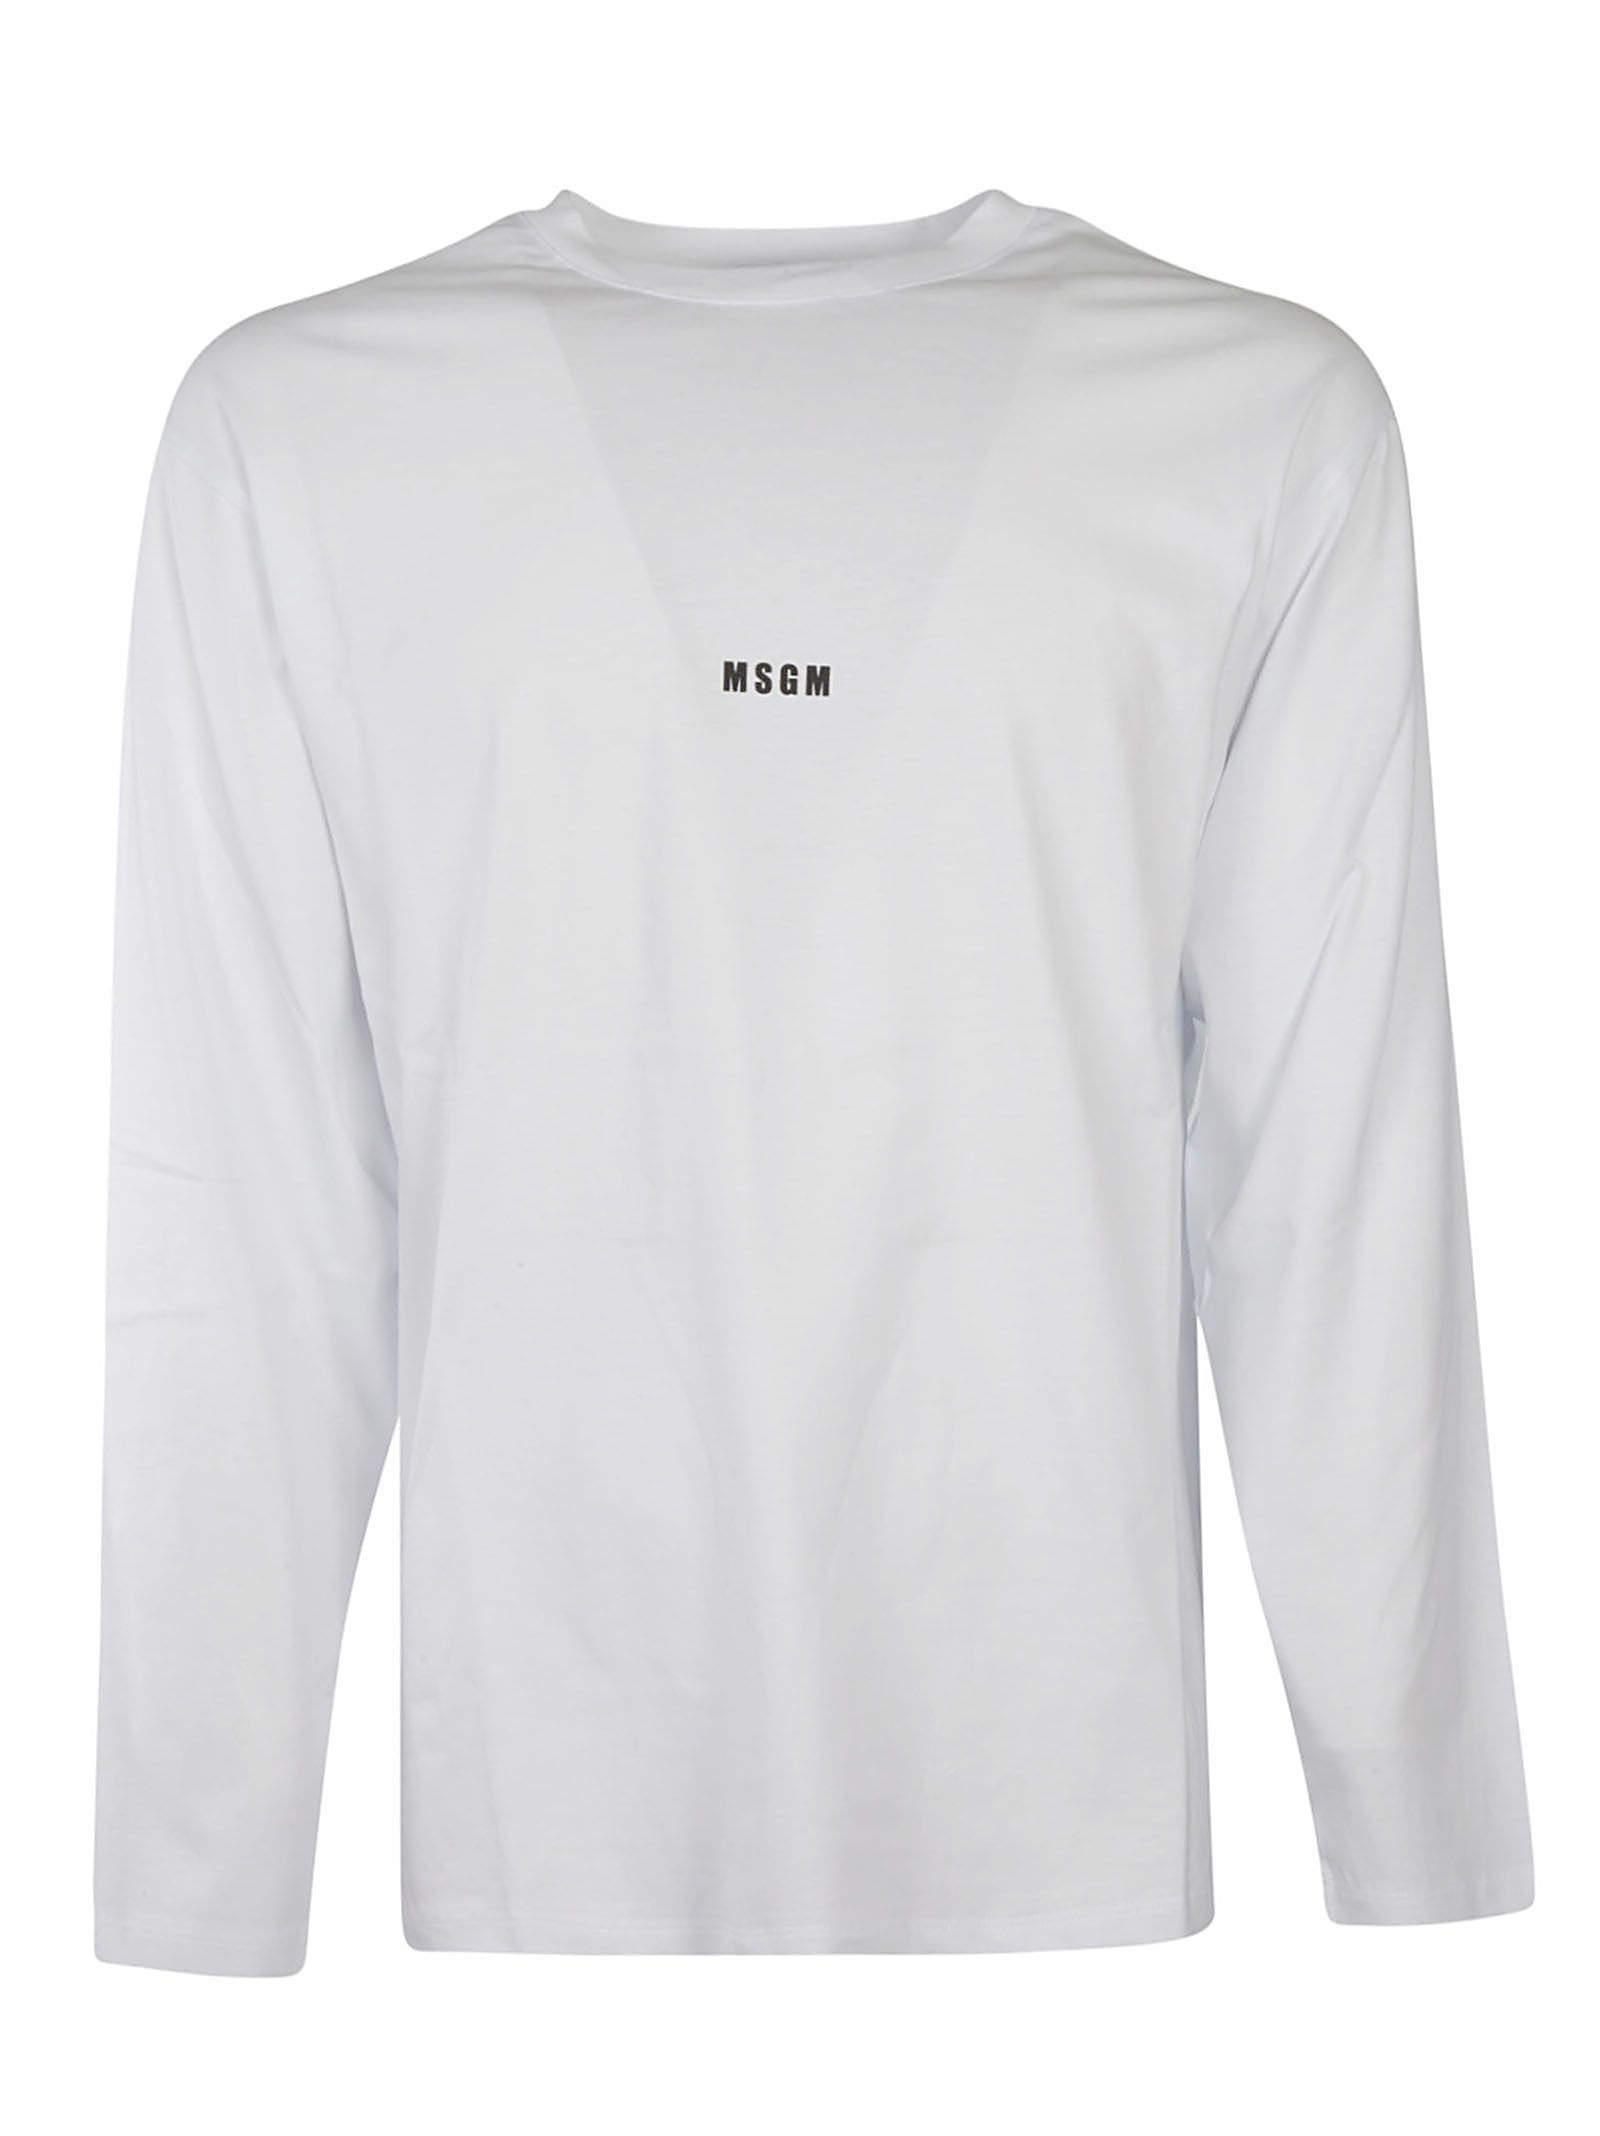 Msgm Cottons MEN'S 3040MM16021709801 WHITE OTHER MATERIALS SWEATSHIRT